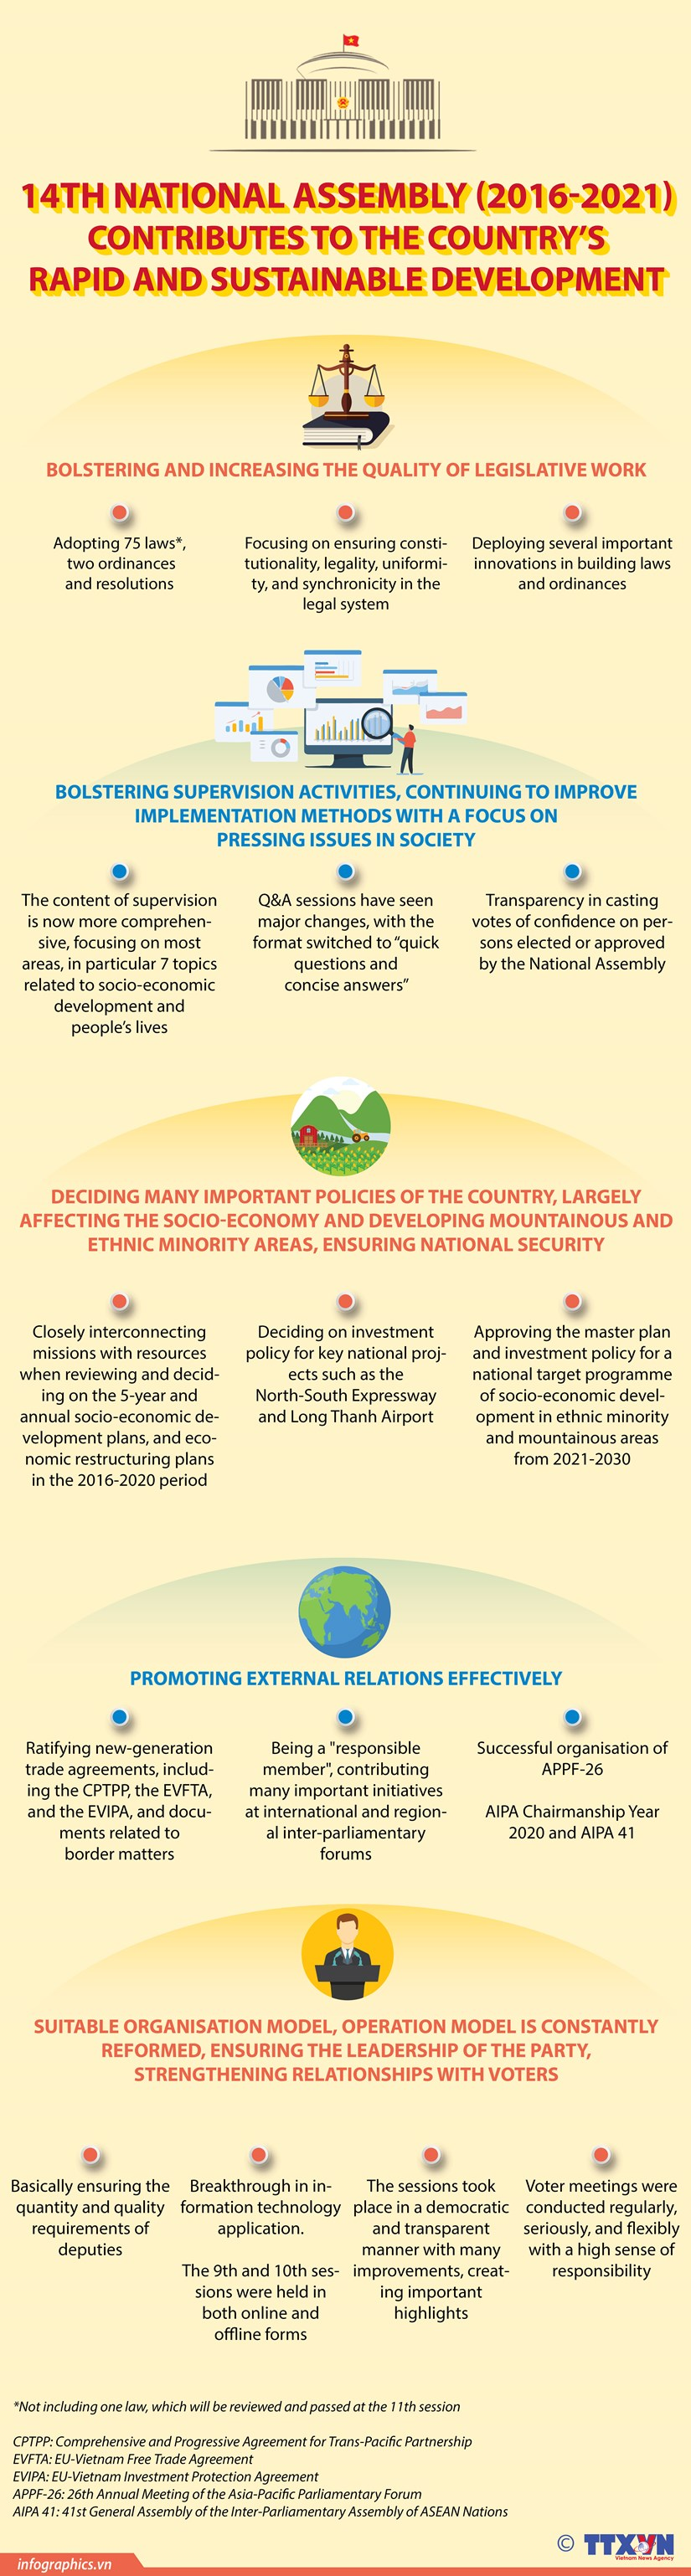 14th National Assembly contributes to national development hinh anh 1